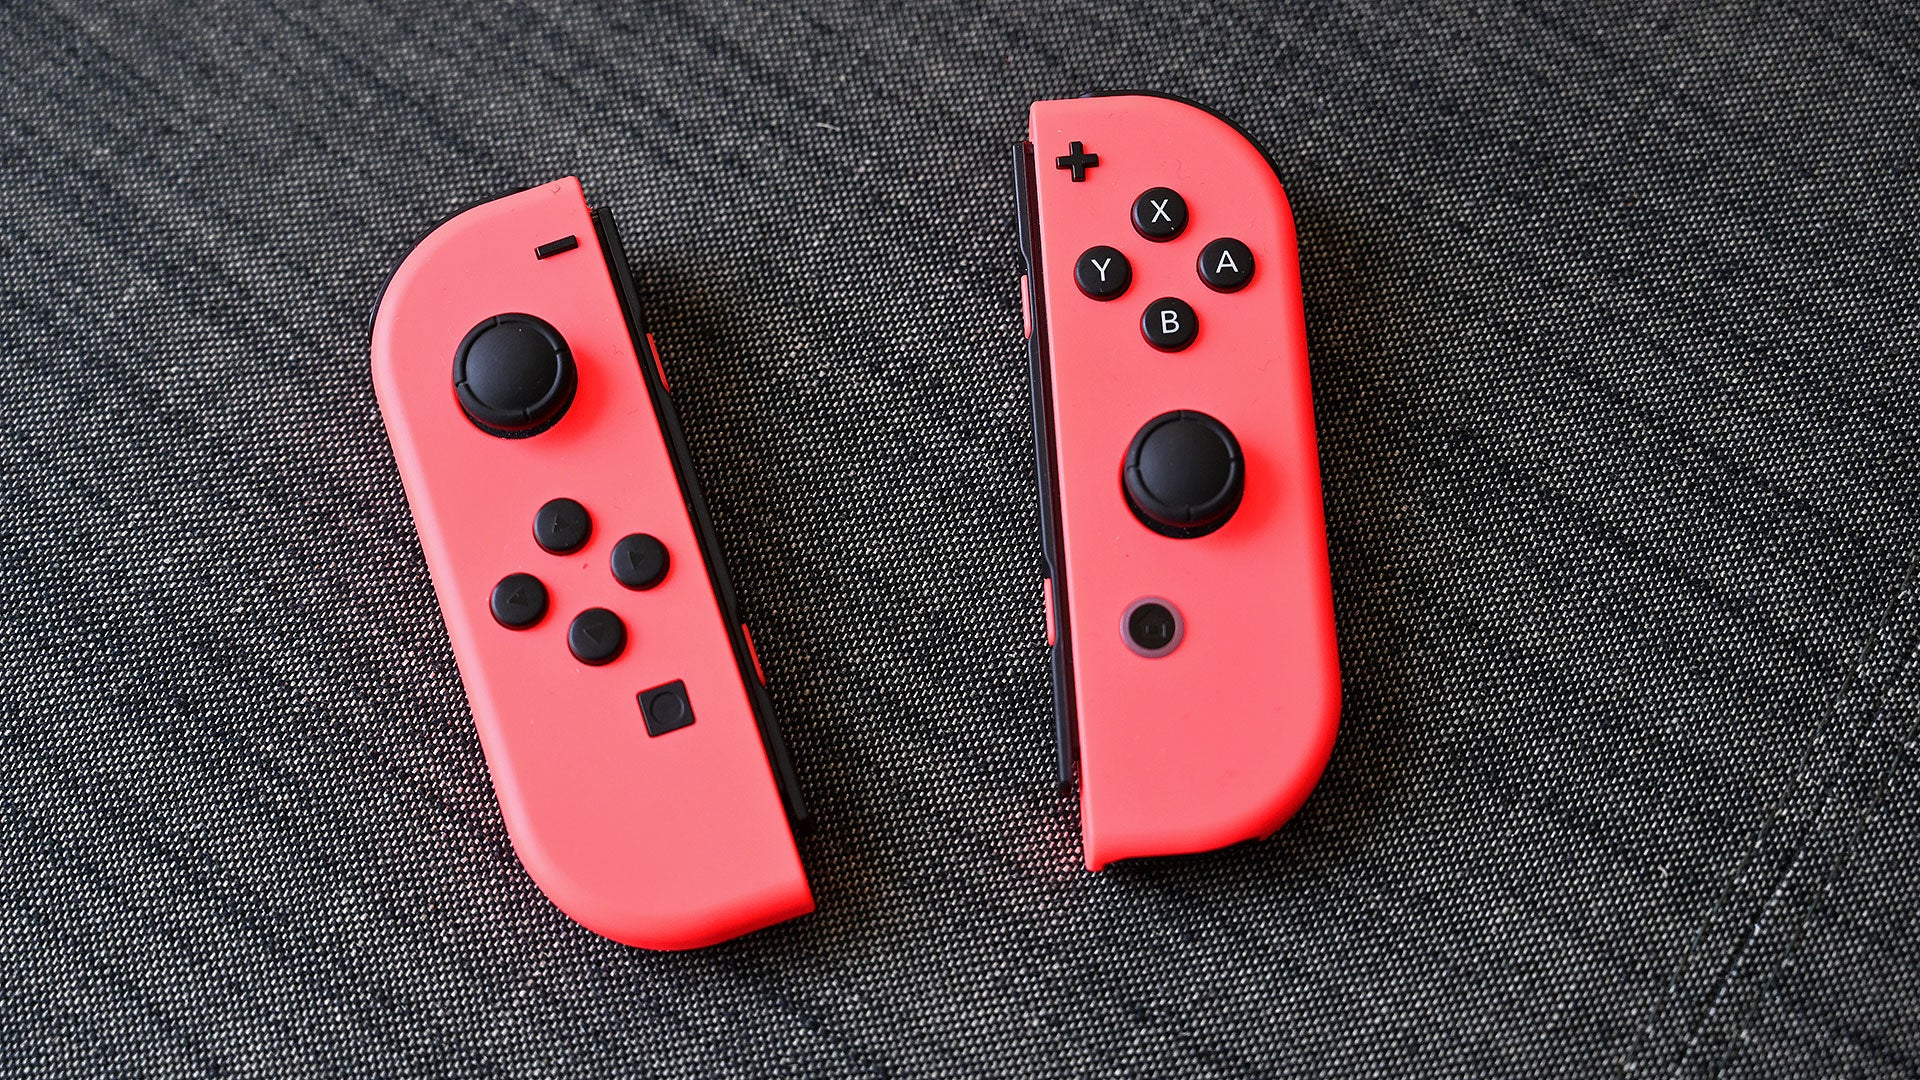 Joy-Con 'Drift' Has Gotten So Bad, Nintendo Now Facing A Class-Action Lawsuit